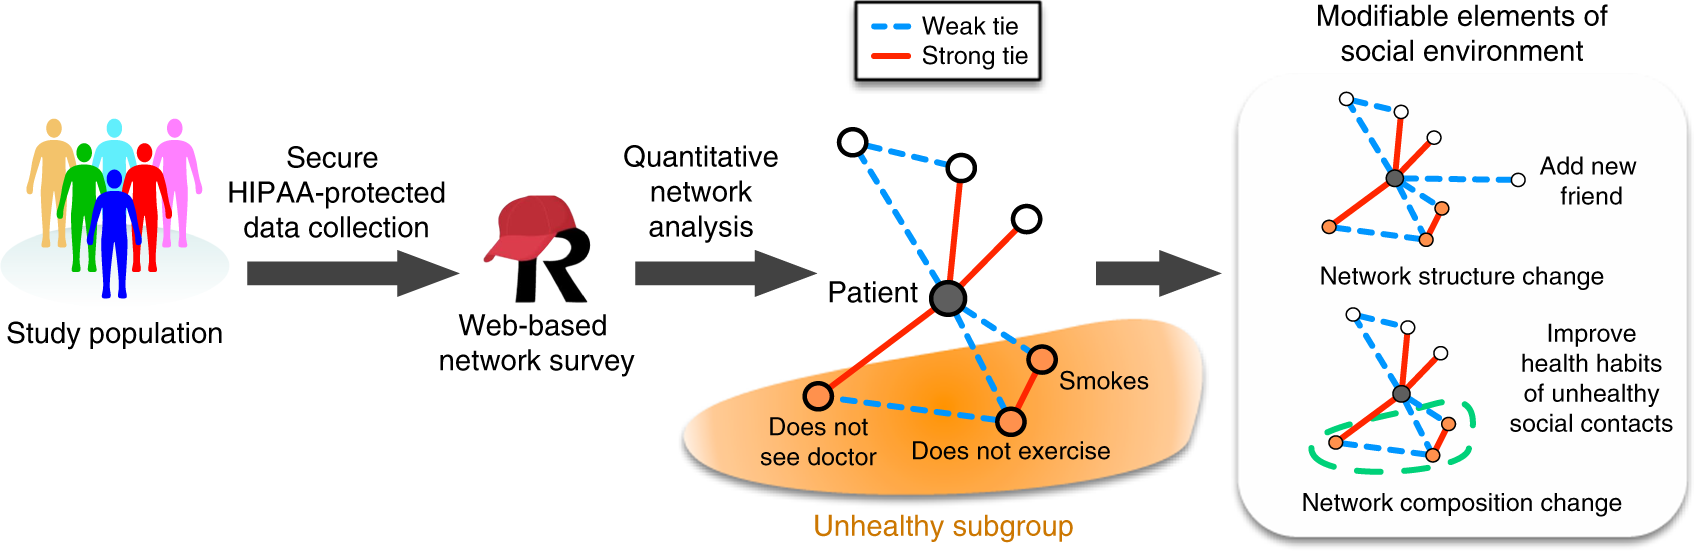 A scalable online tool for quantitative social network assessment